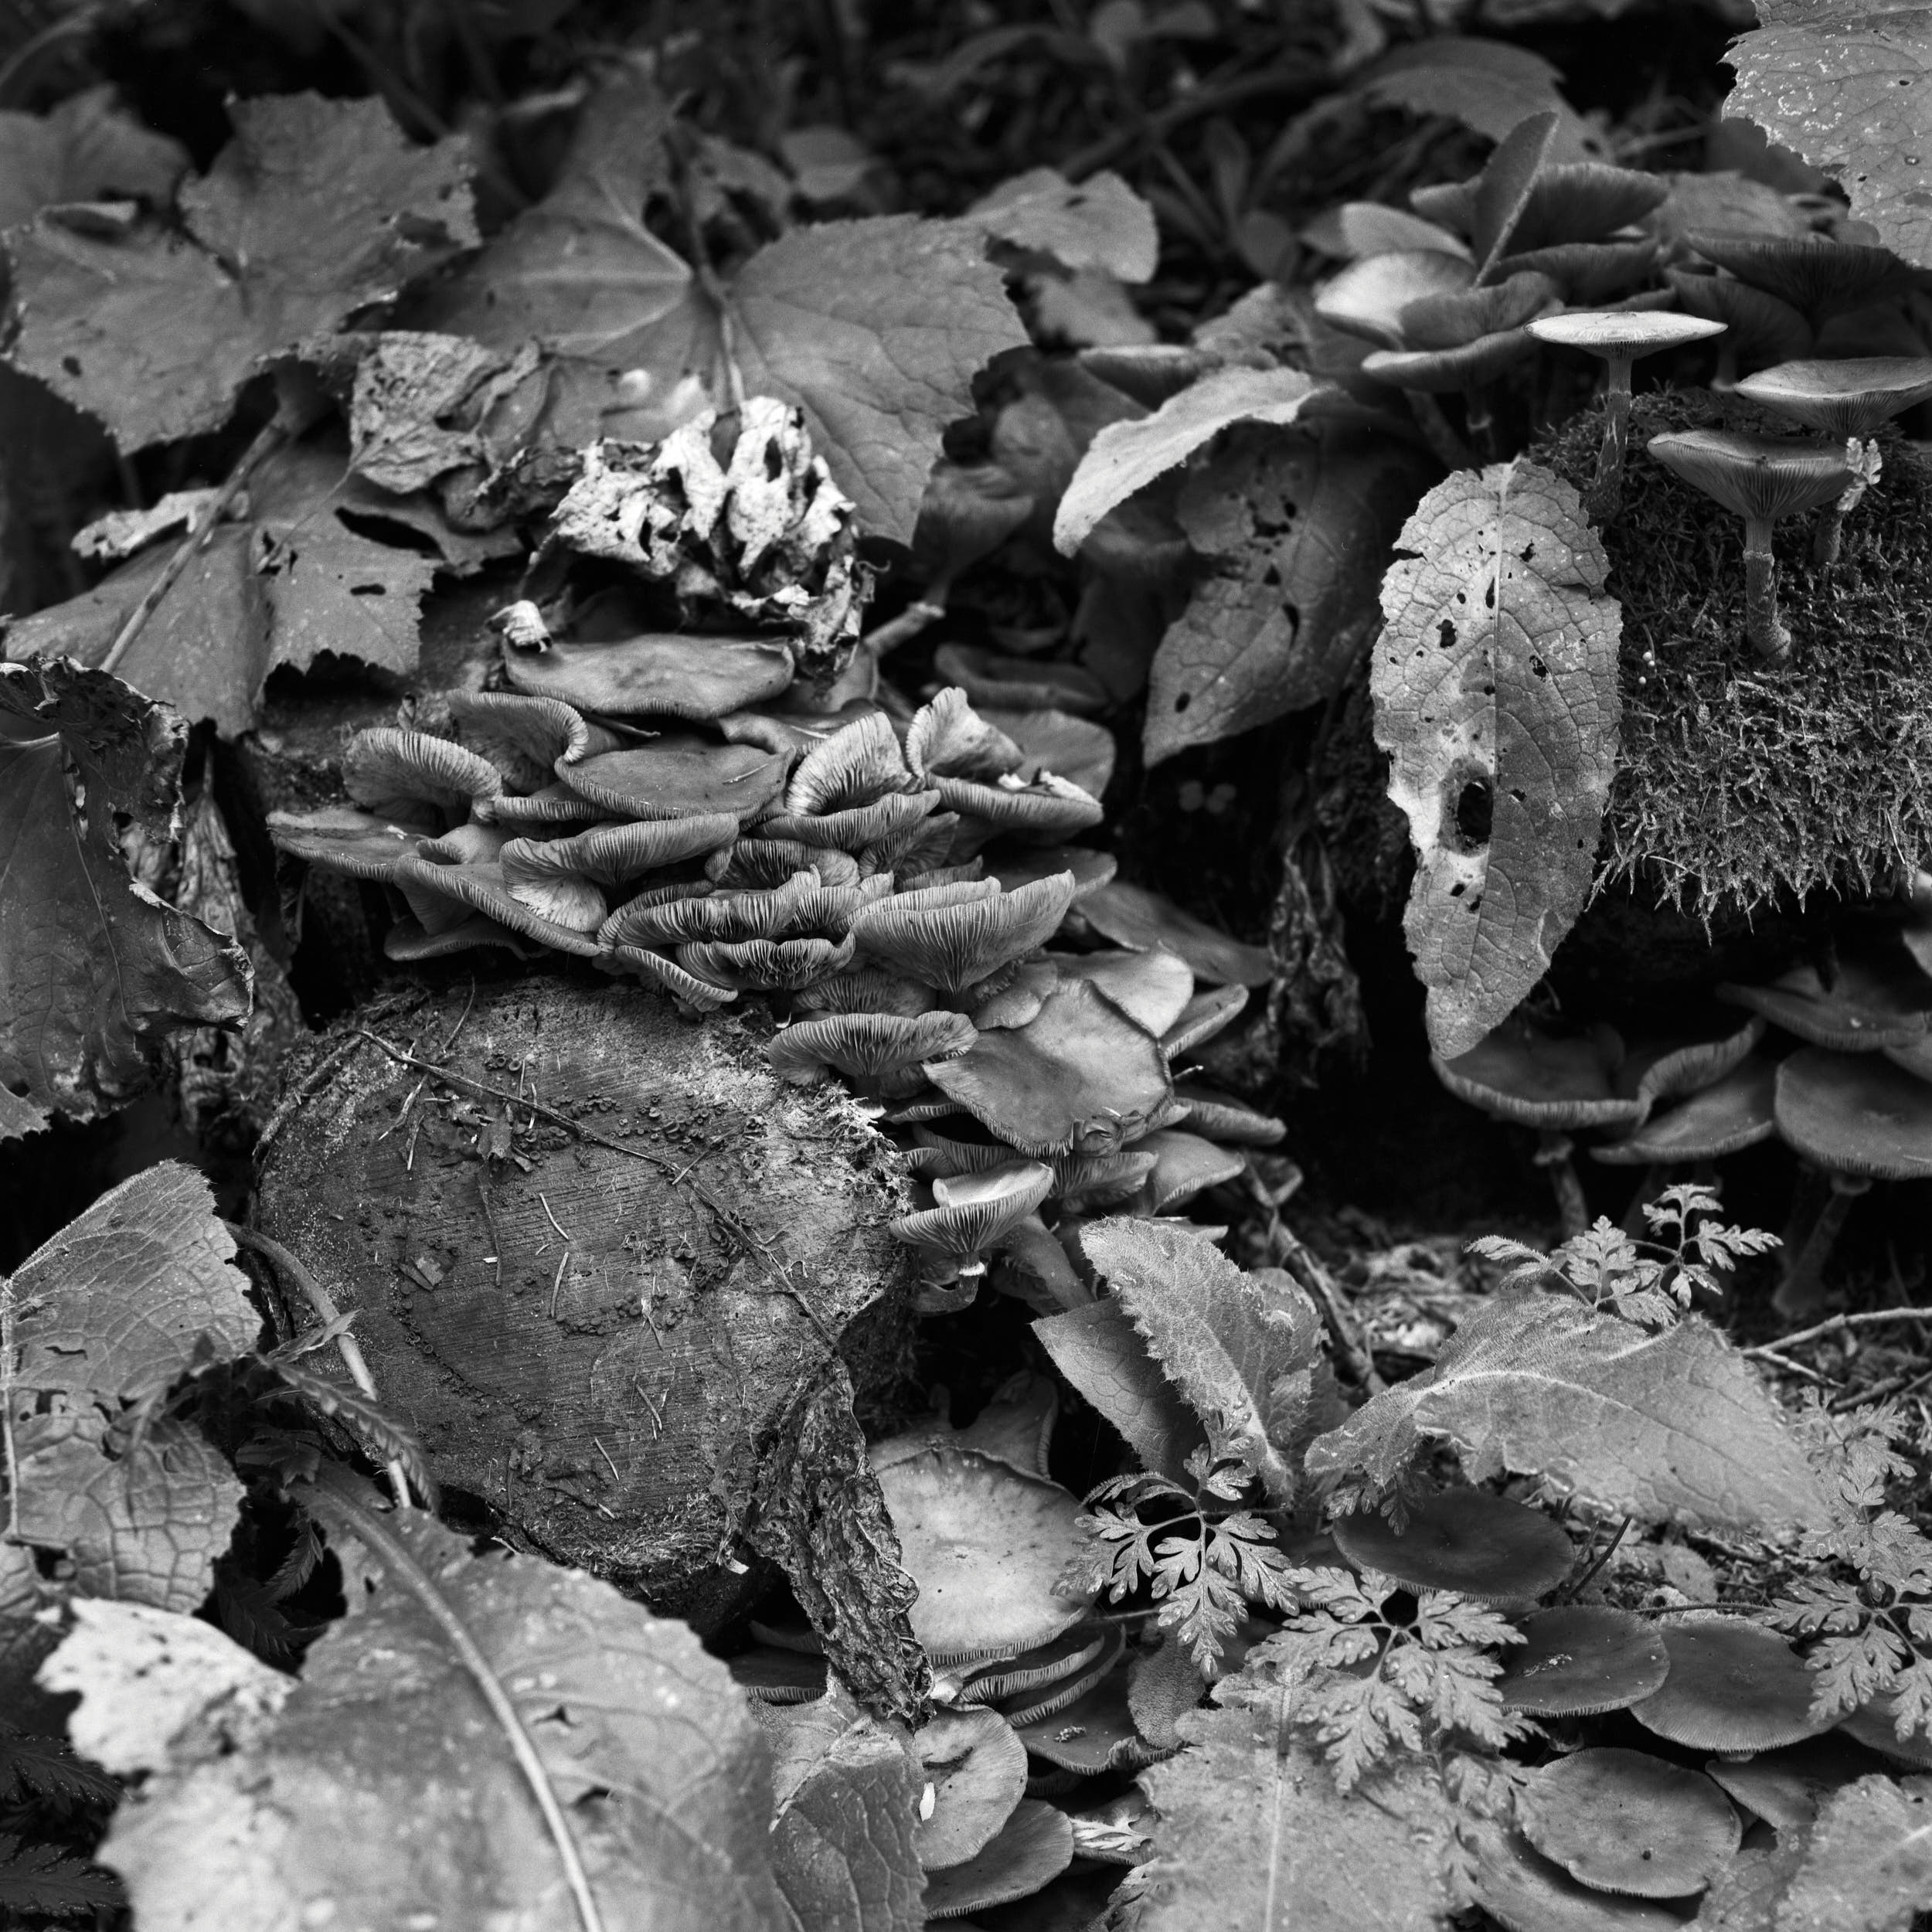 Black and white close up of leaves, mushrooms and logs.